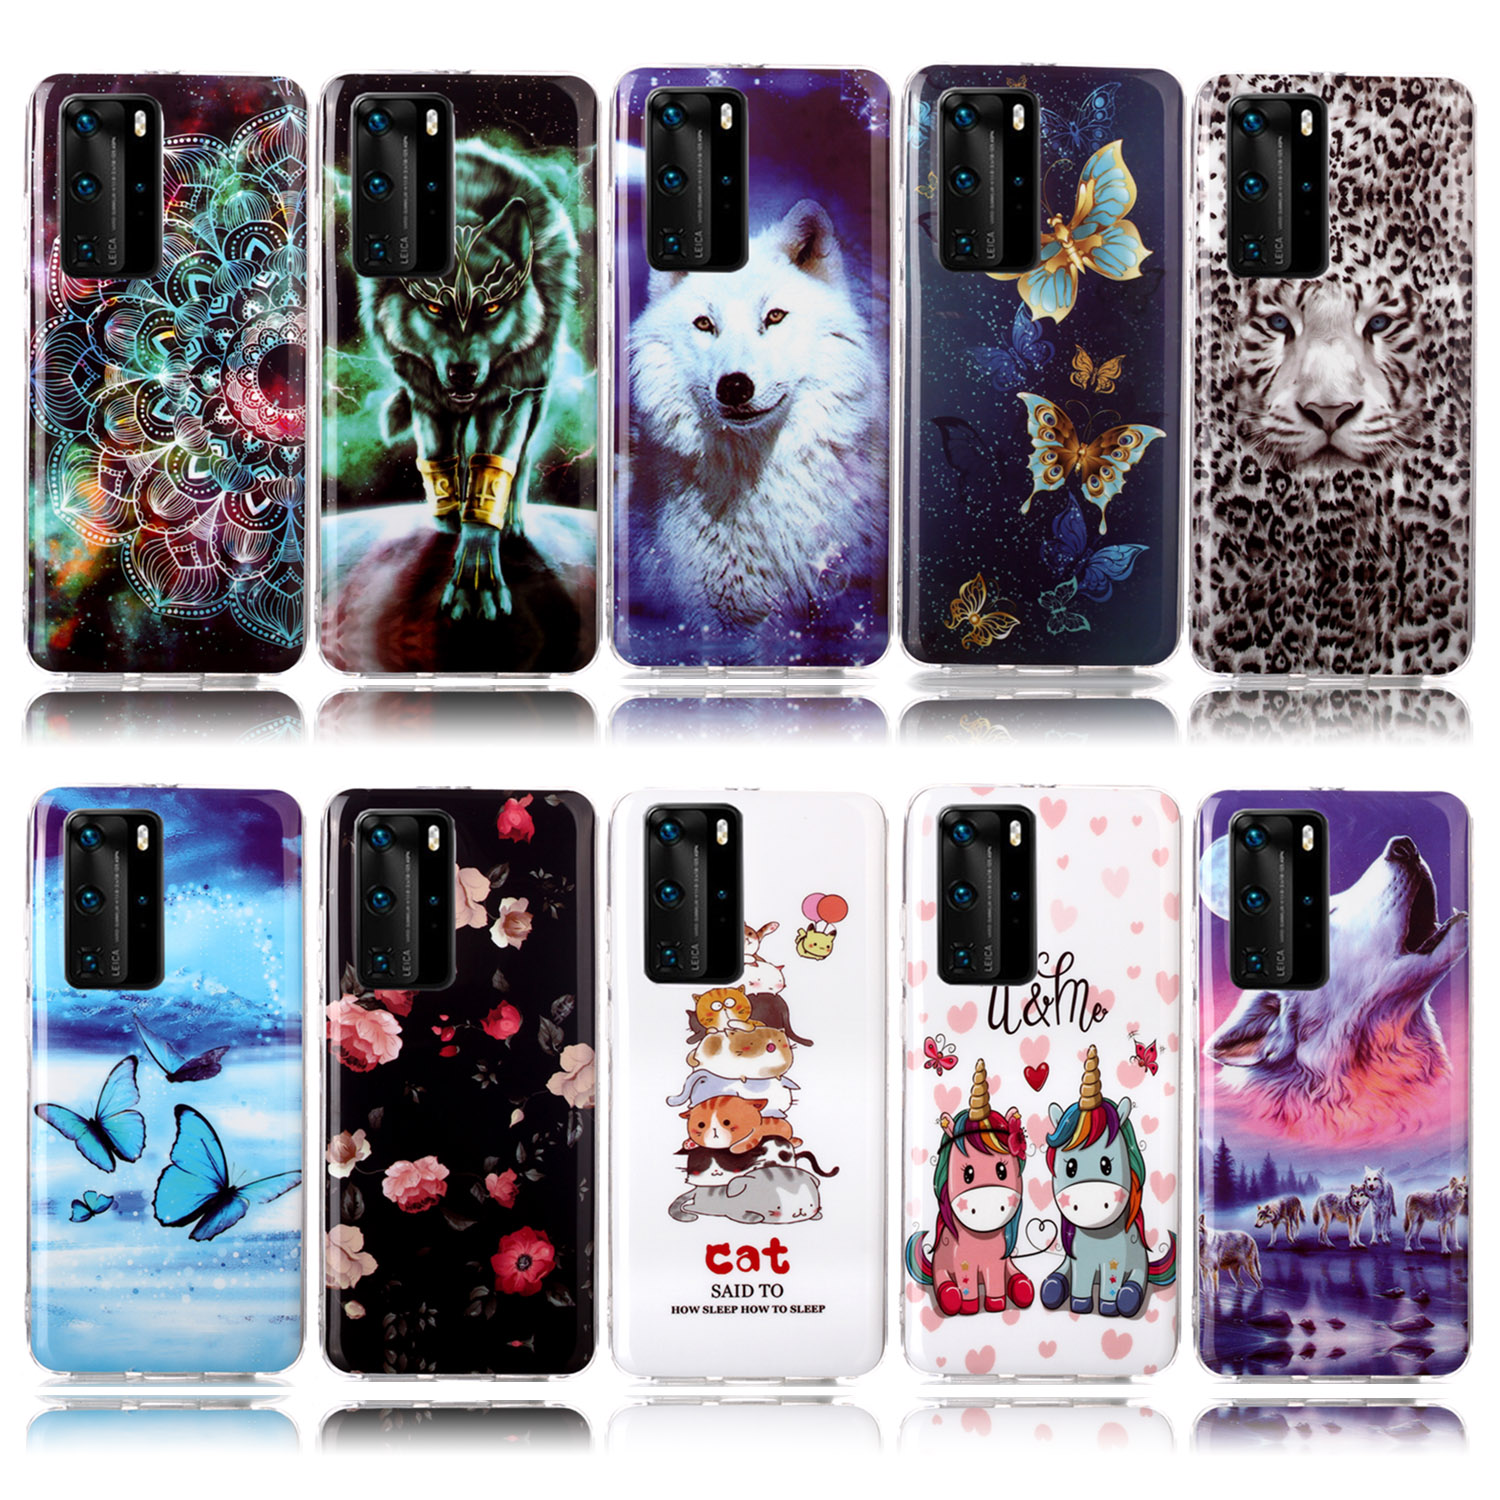 Newest Telephones For estojo <font><b>Samsung</b></font> A11 sFor <font><b>Samsung</b></font> Galaxy capa M11 A50S M10 <font><b>A30</b></font> A20 A50 A30S A10 Luminous TPU Cover Positivo image